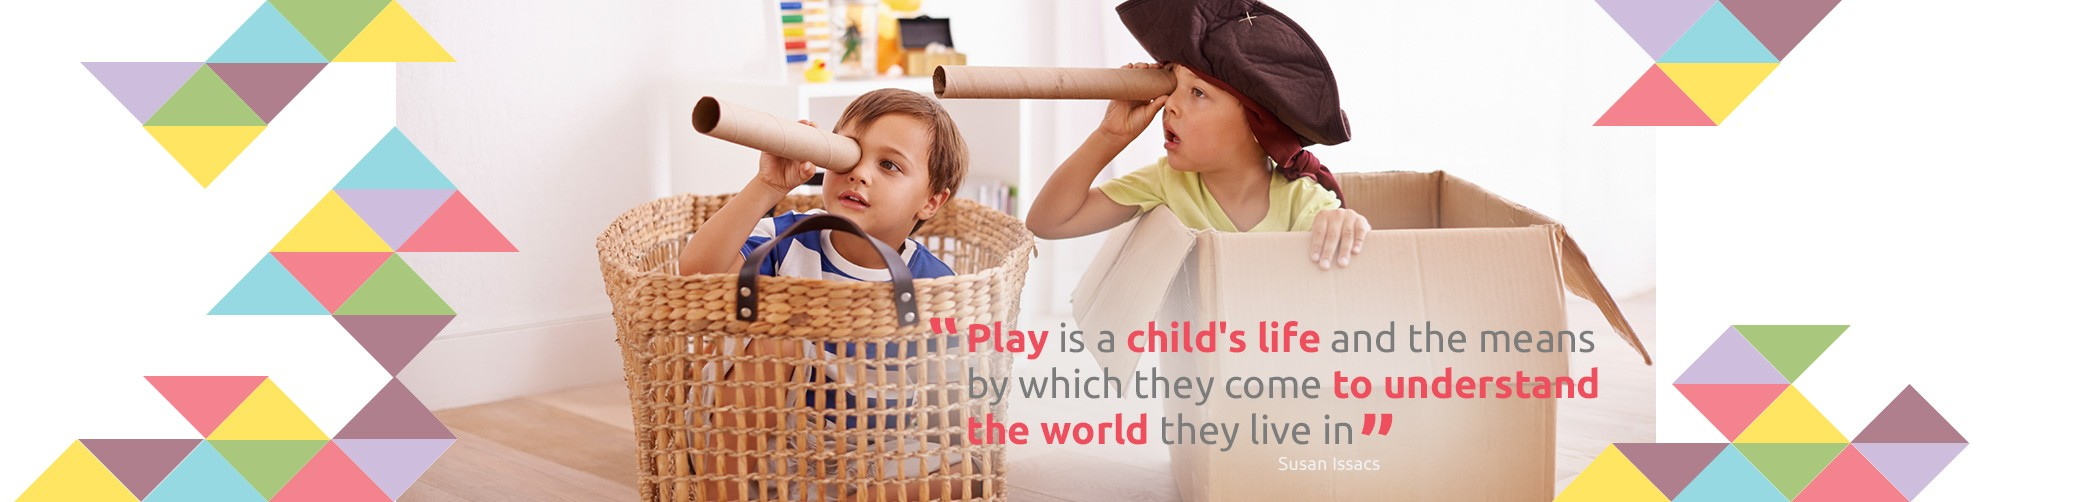 ChildPlayWorks - slide3.jpg